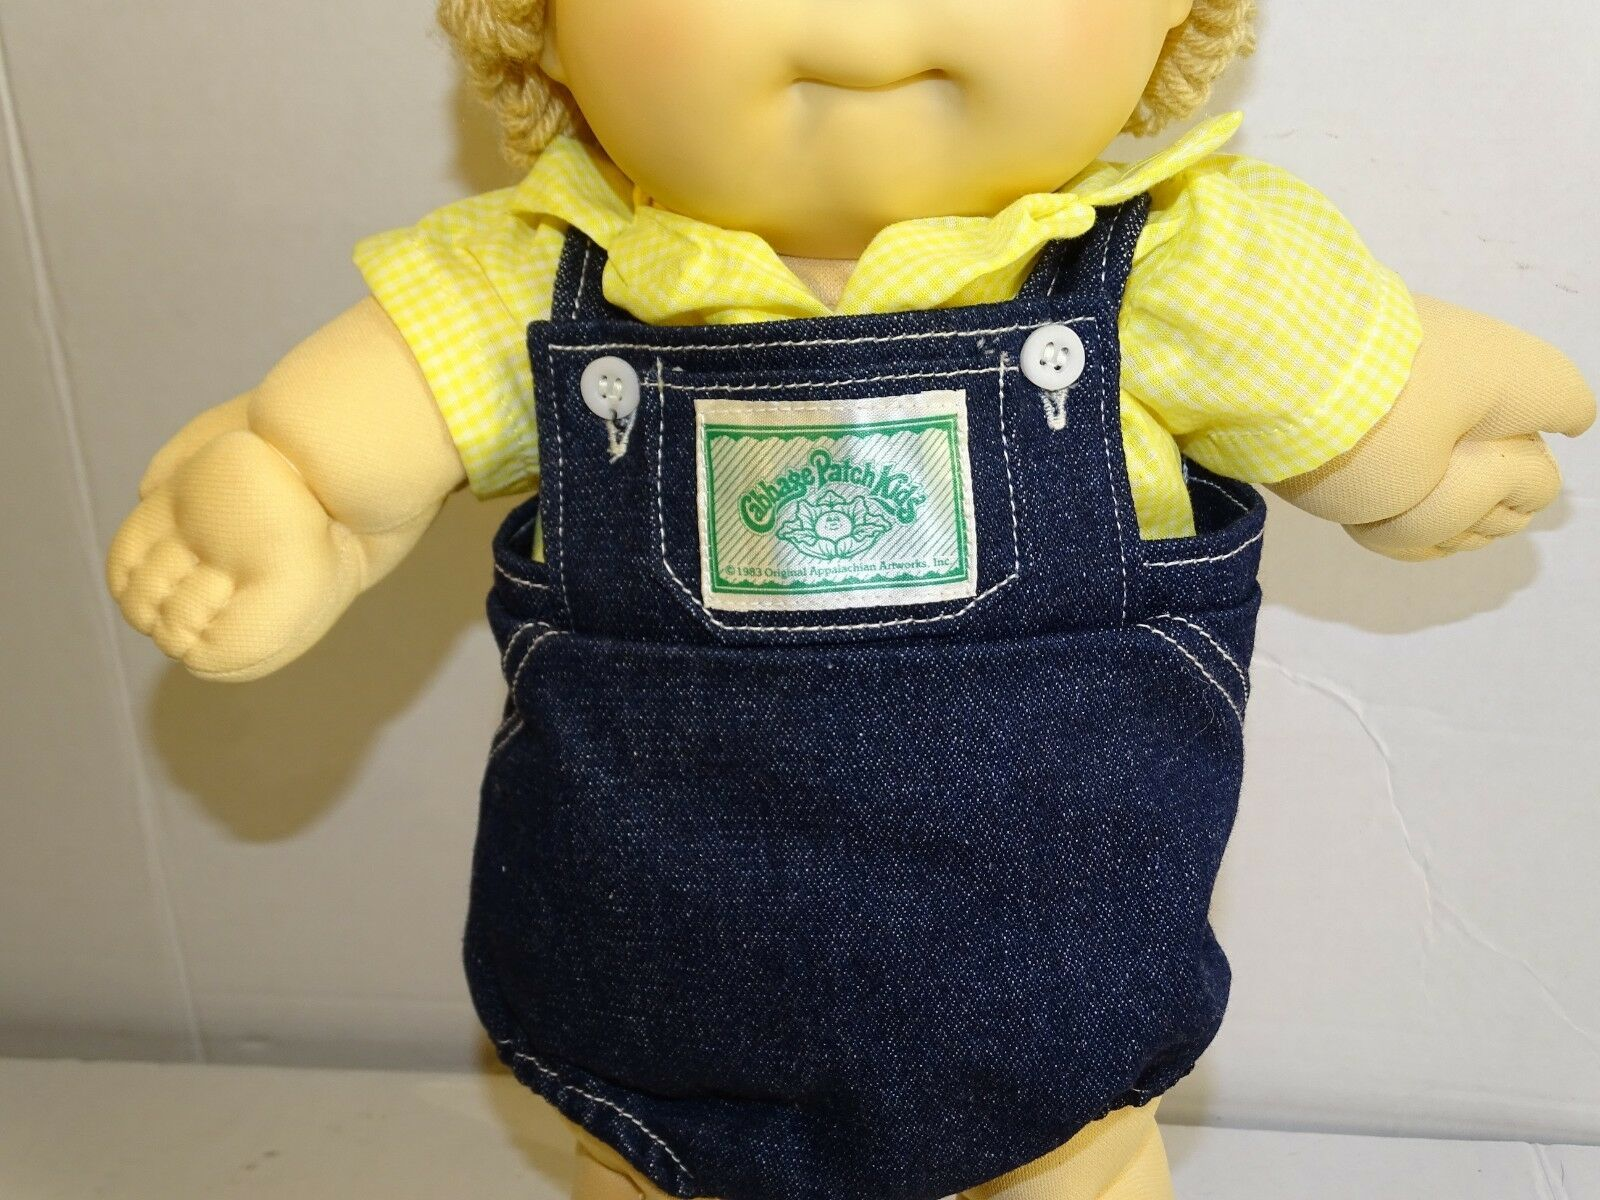 Clip-Ons Vintage Cabbage Style BOYS w// Spiky Hair Taiwan 1980/'s 2 left